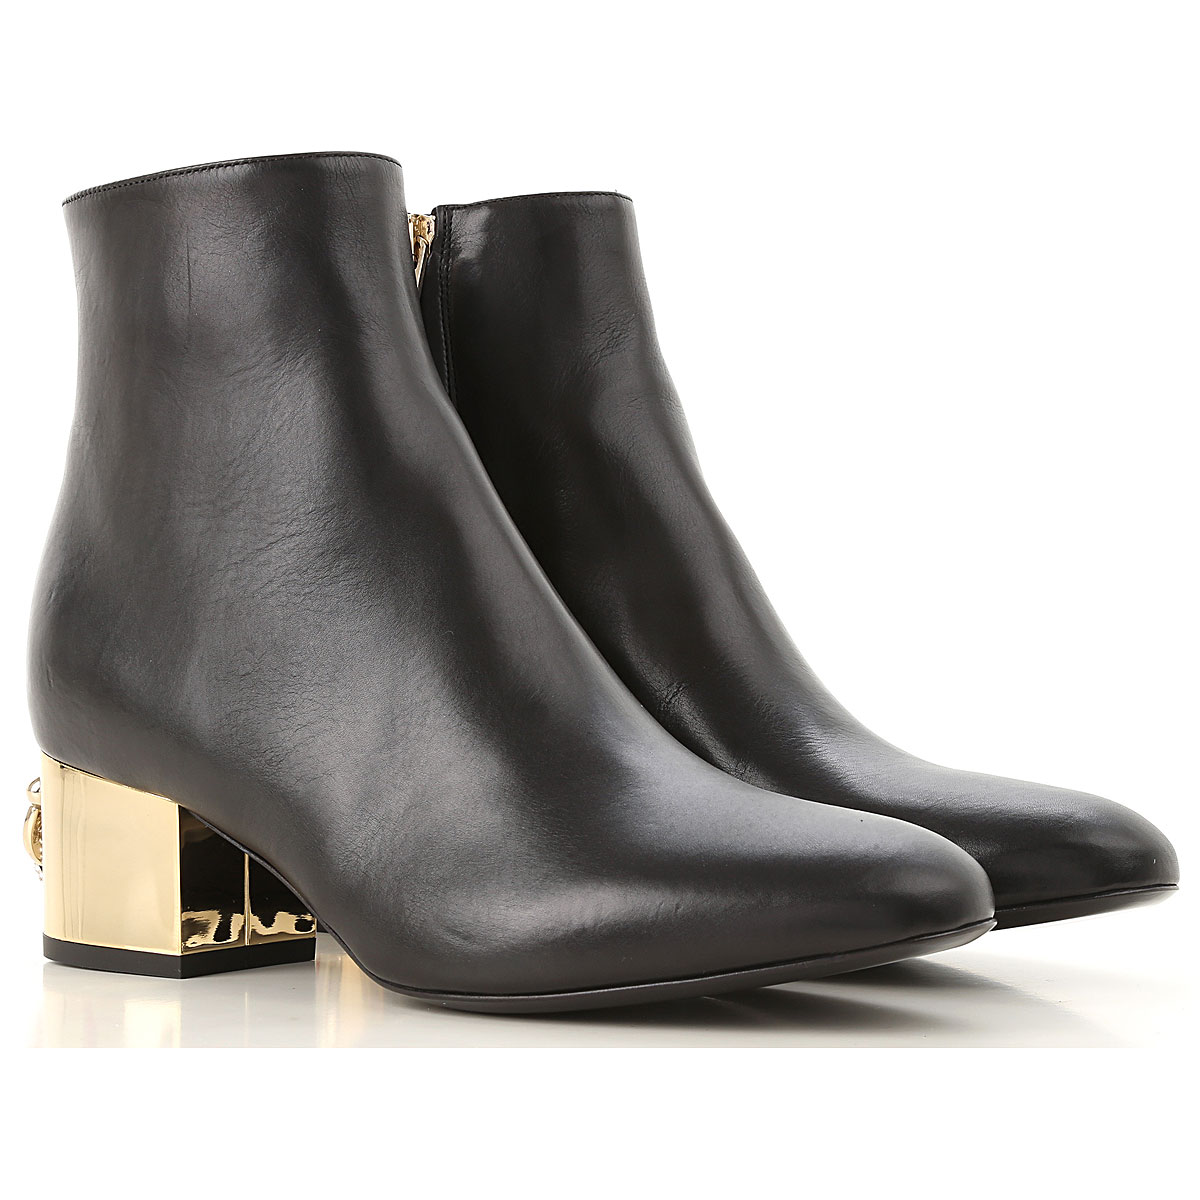 Image of Coliac Boots for Women, Booties, Black, Leather, 2017, 5 6 6.5 7 8 8.5 9